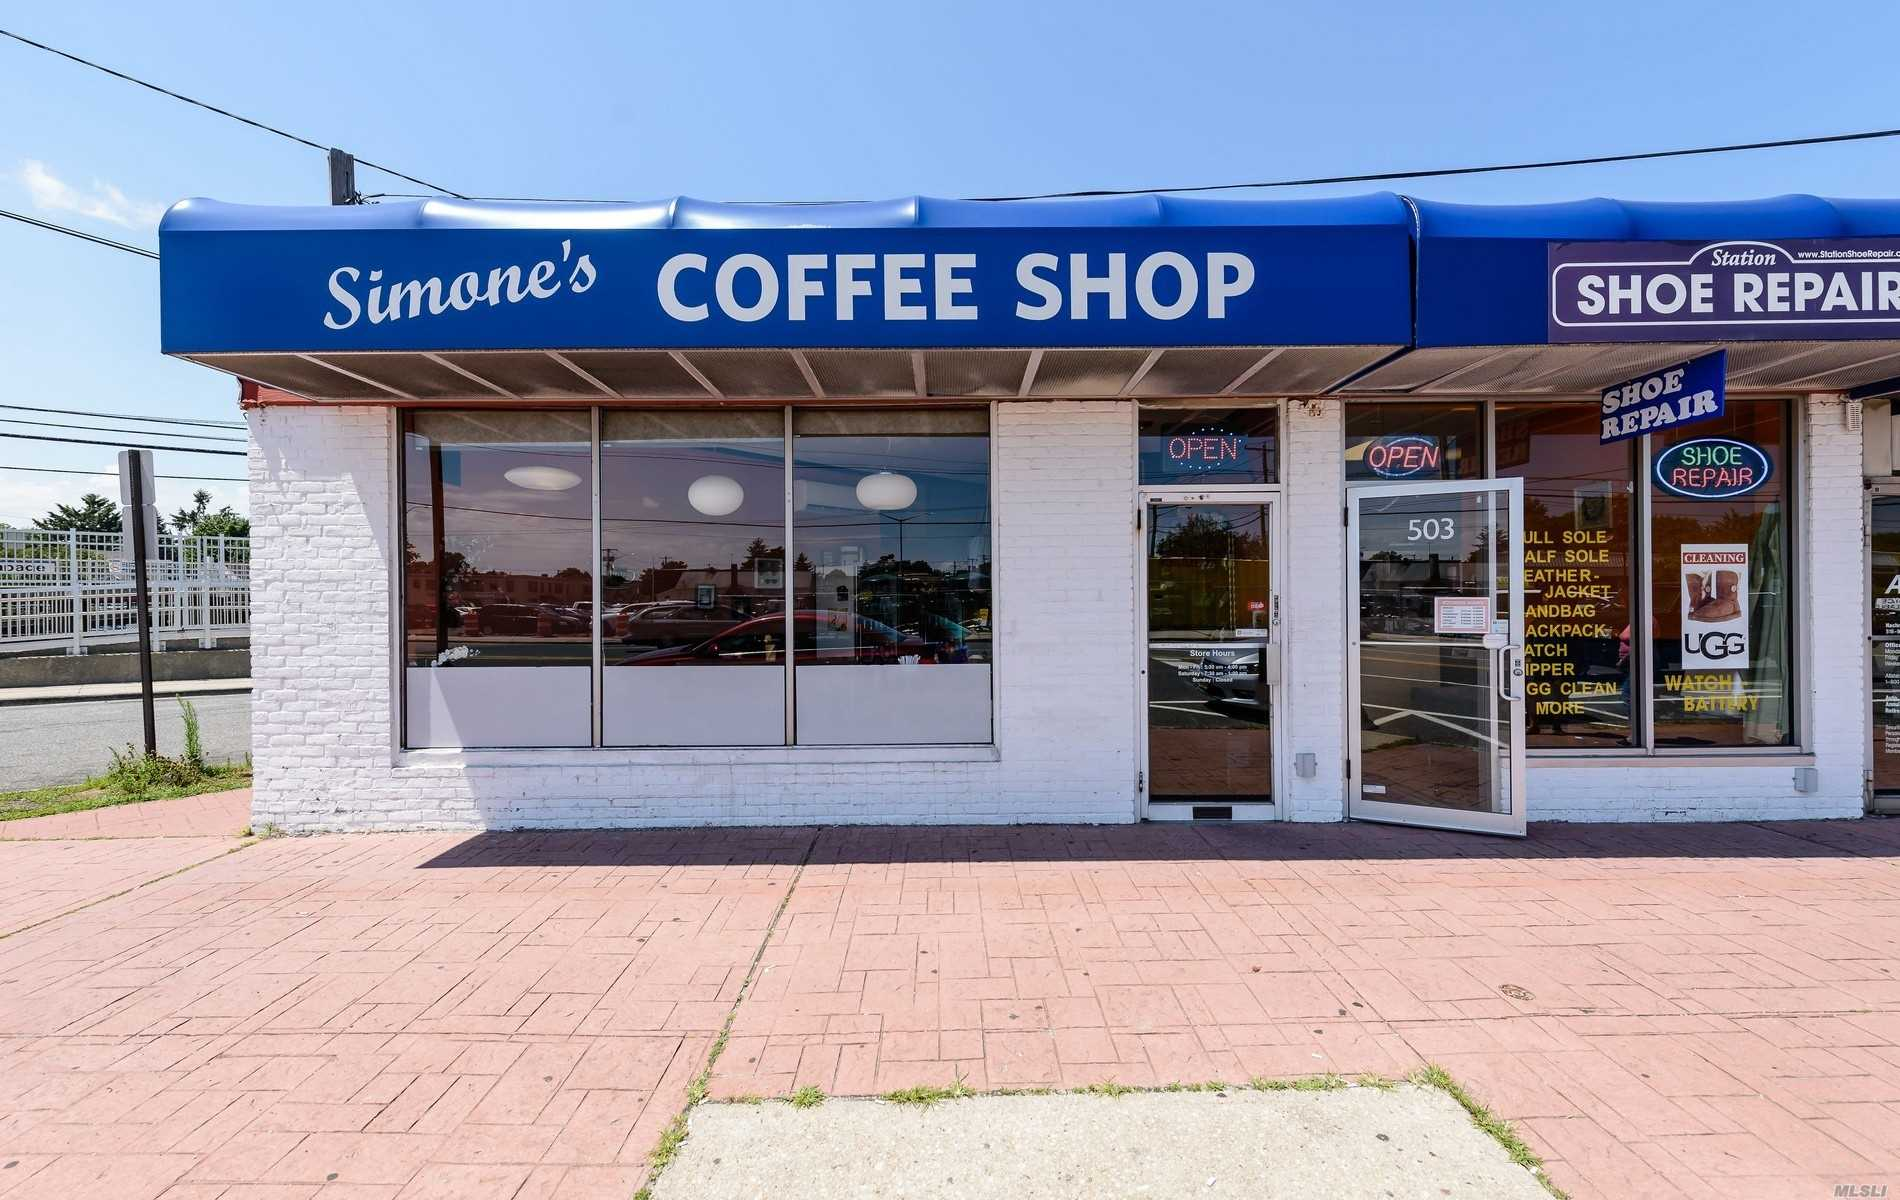 40 Year Well Established Coffee Shop Steps Away From The Lirr. Established Income With Great Growth Opportunity. Very High Traffic With Easy Access To Transportation. Parking In Rear. 5 Year Lease. 5 Additional Years Optional.